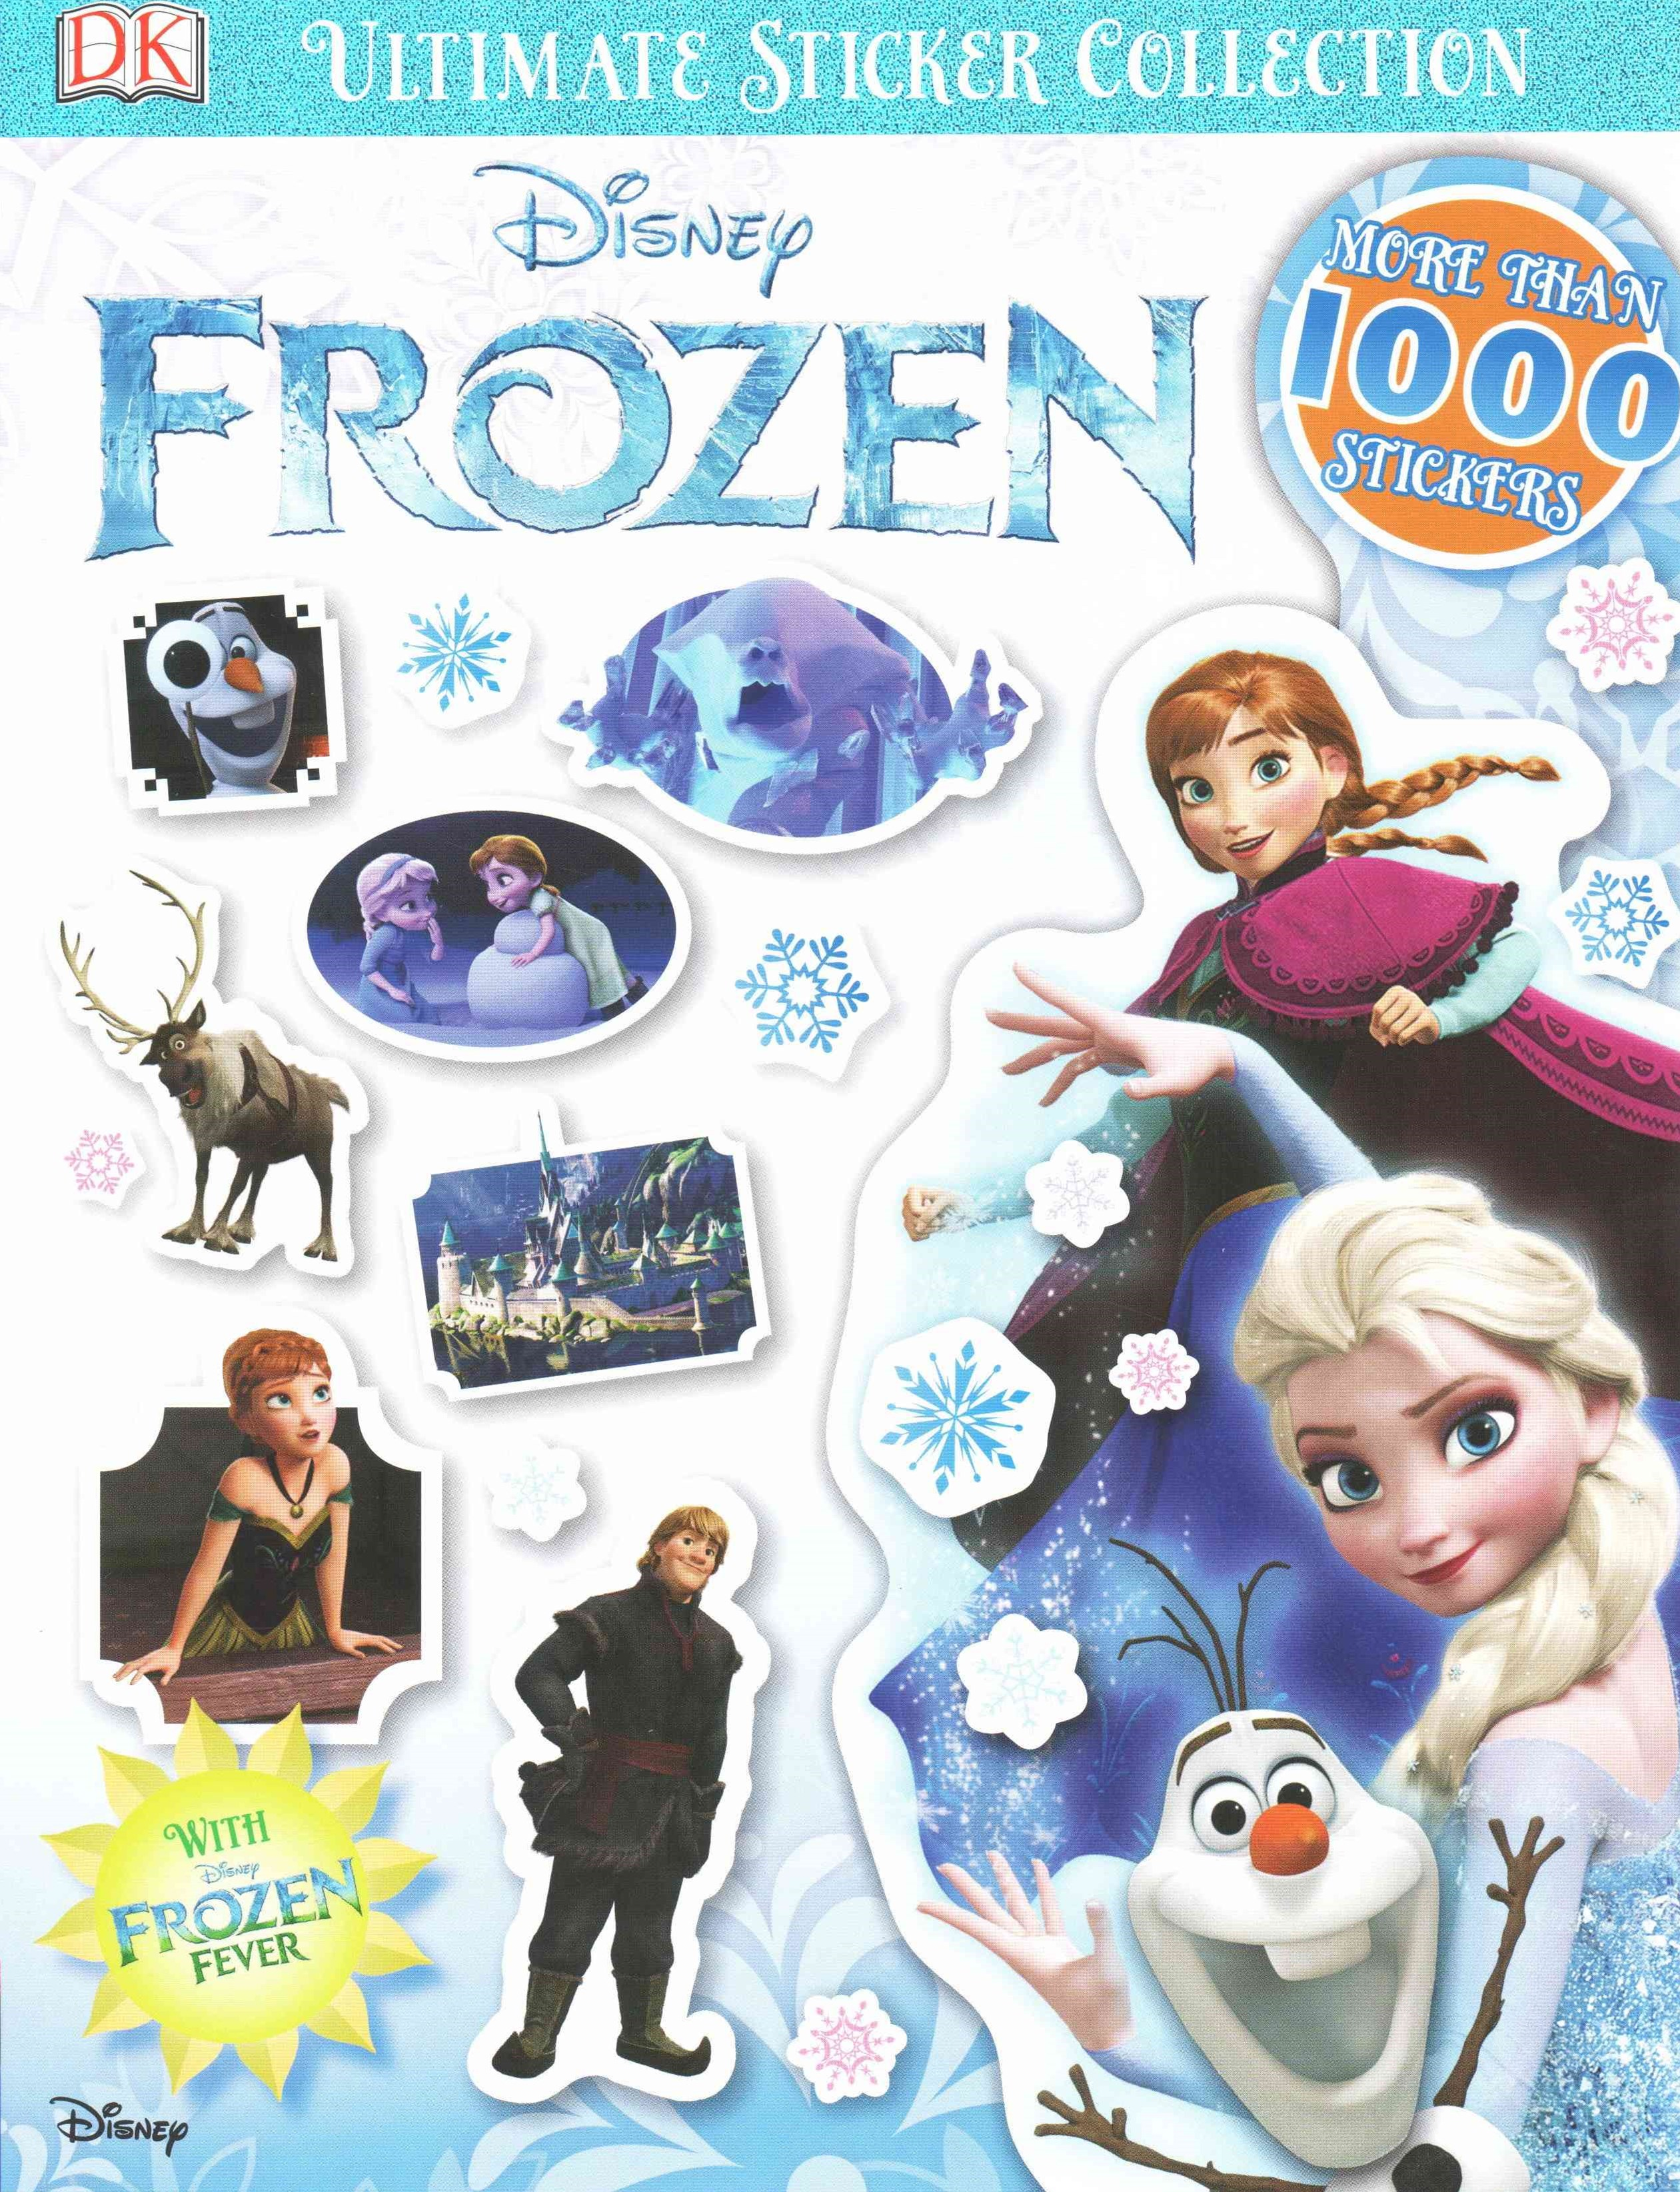 Disney Frozen: Ultimate Sticker Collection